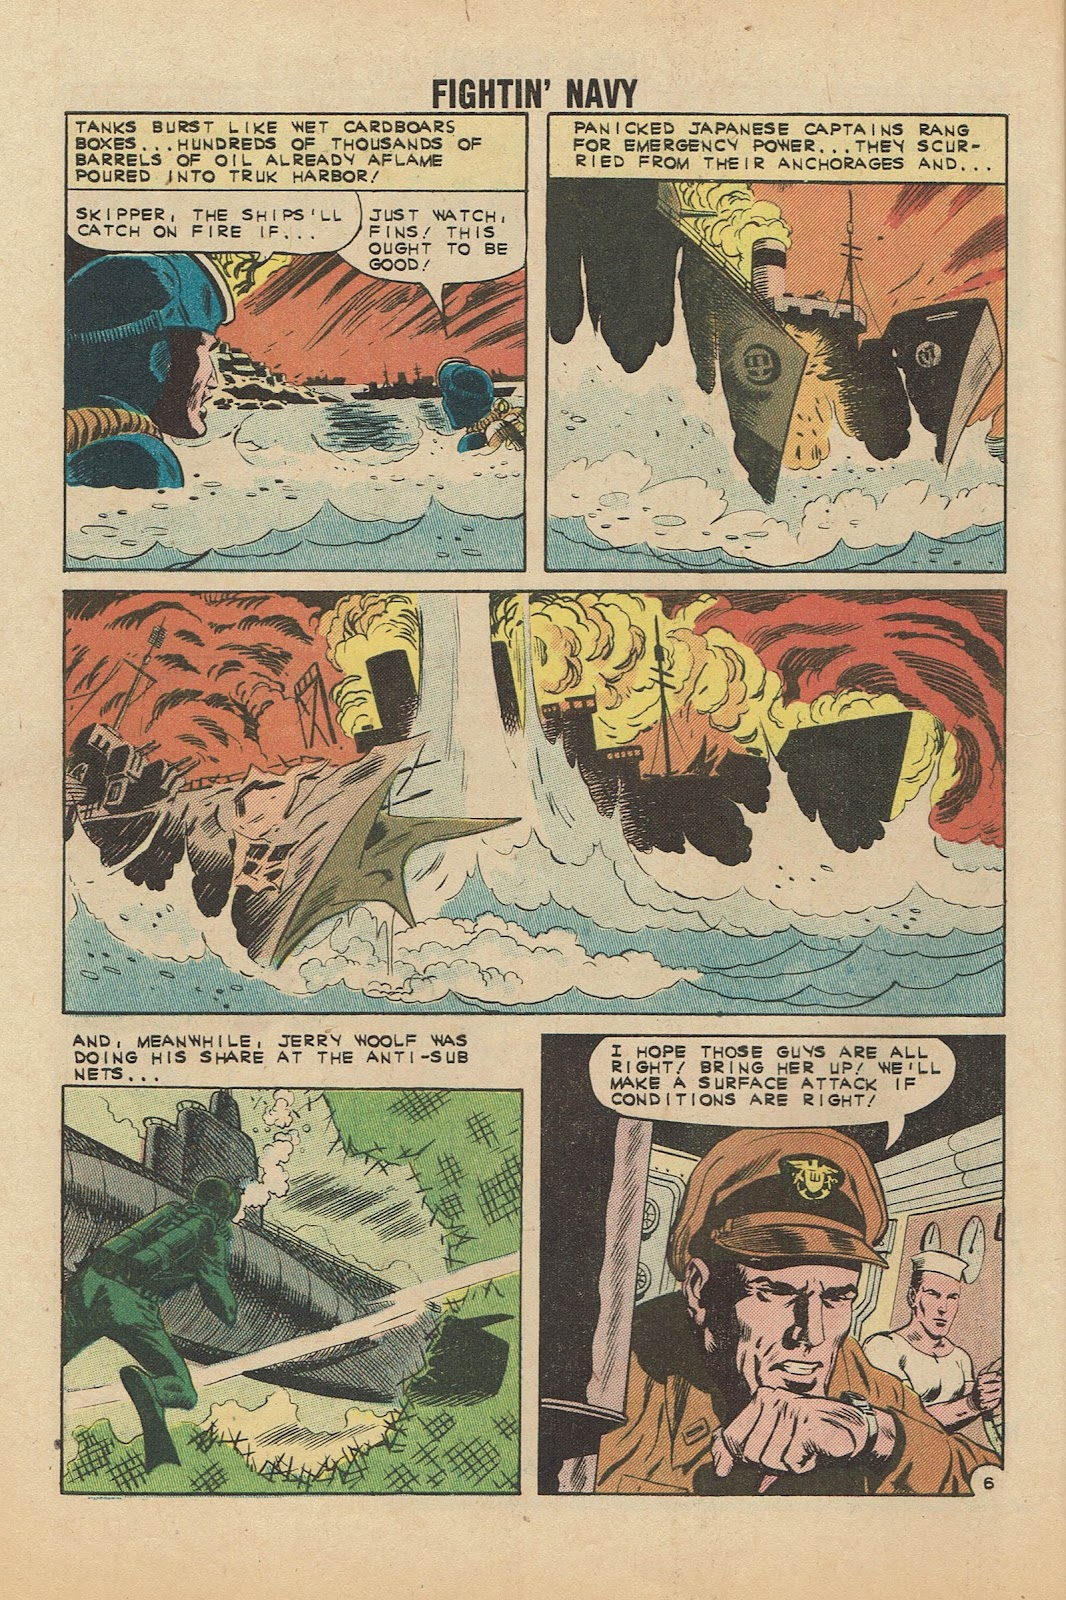 Read online Fightin' Navy comic -  Issue #104 - 32